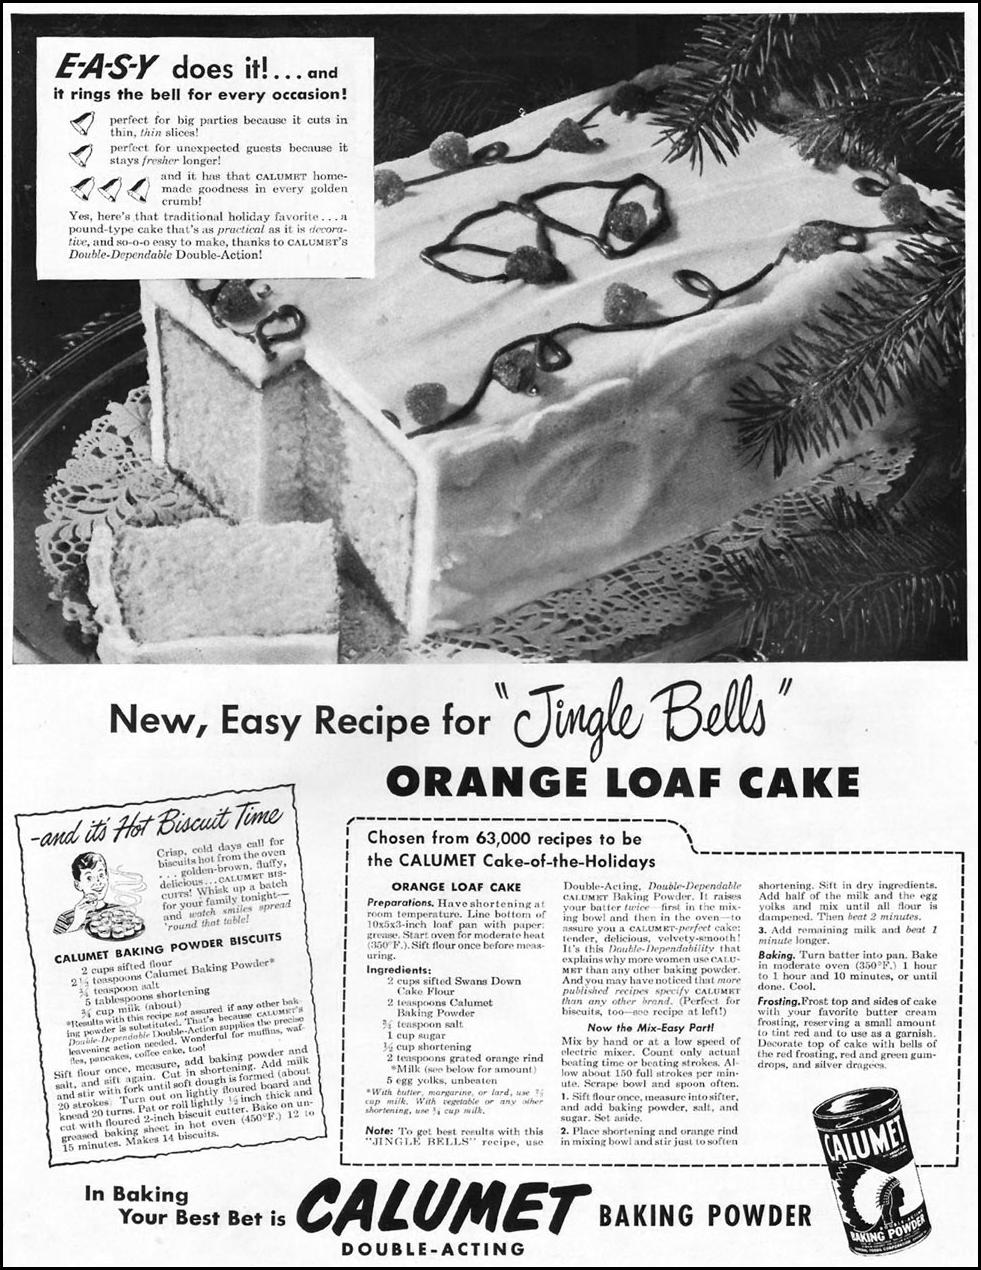 CALUMET BAKING POWDER LADIES' HOME JOURNAL 11/01/1950 p. 114